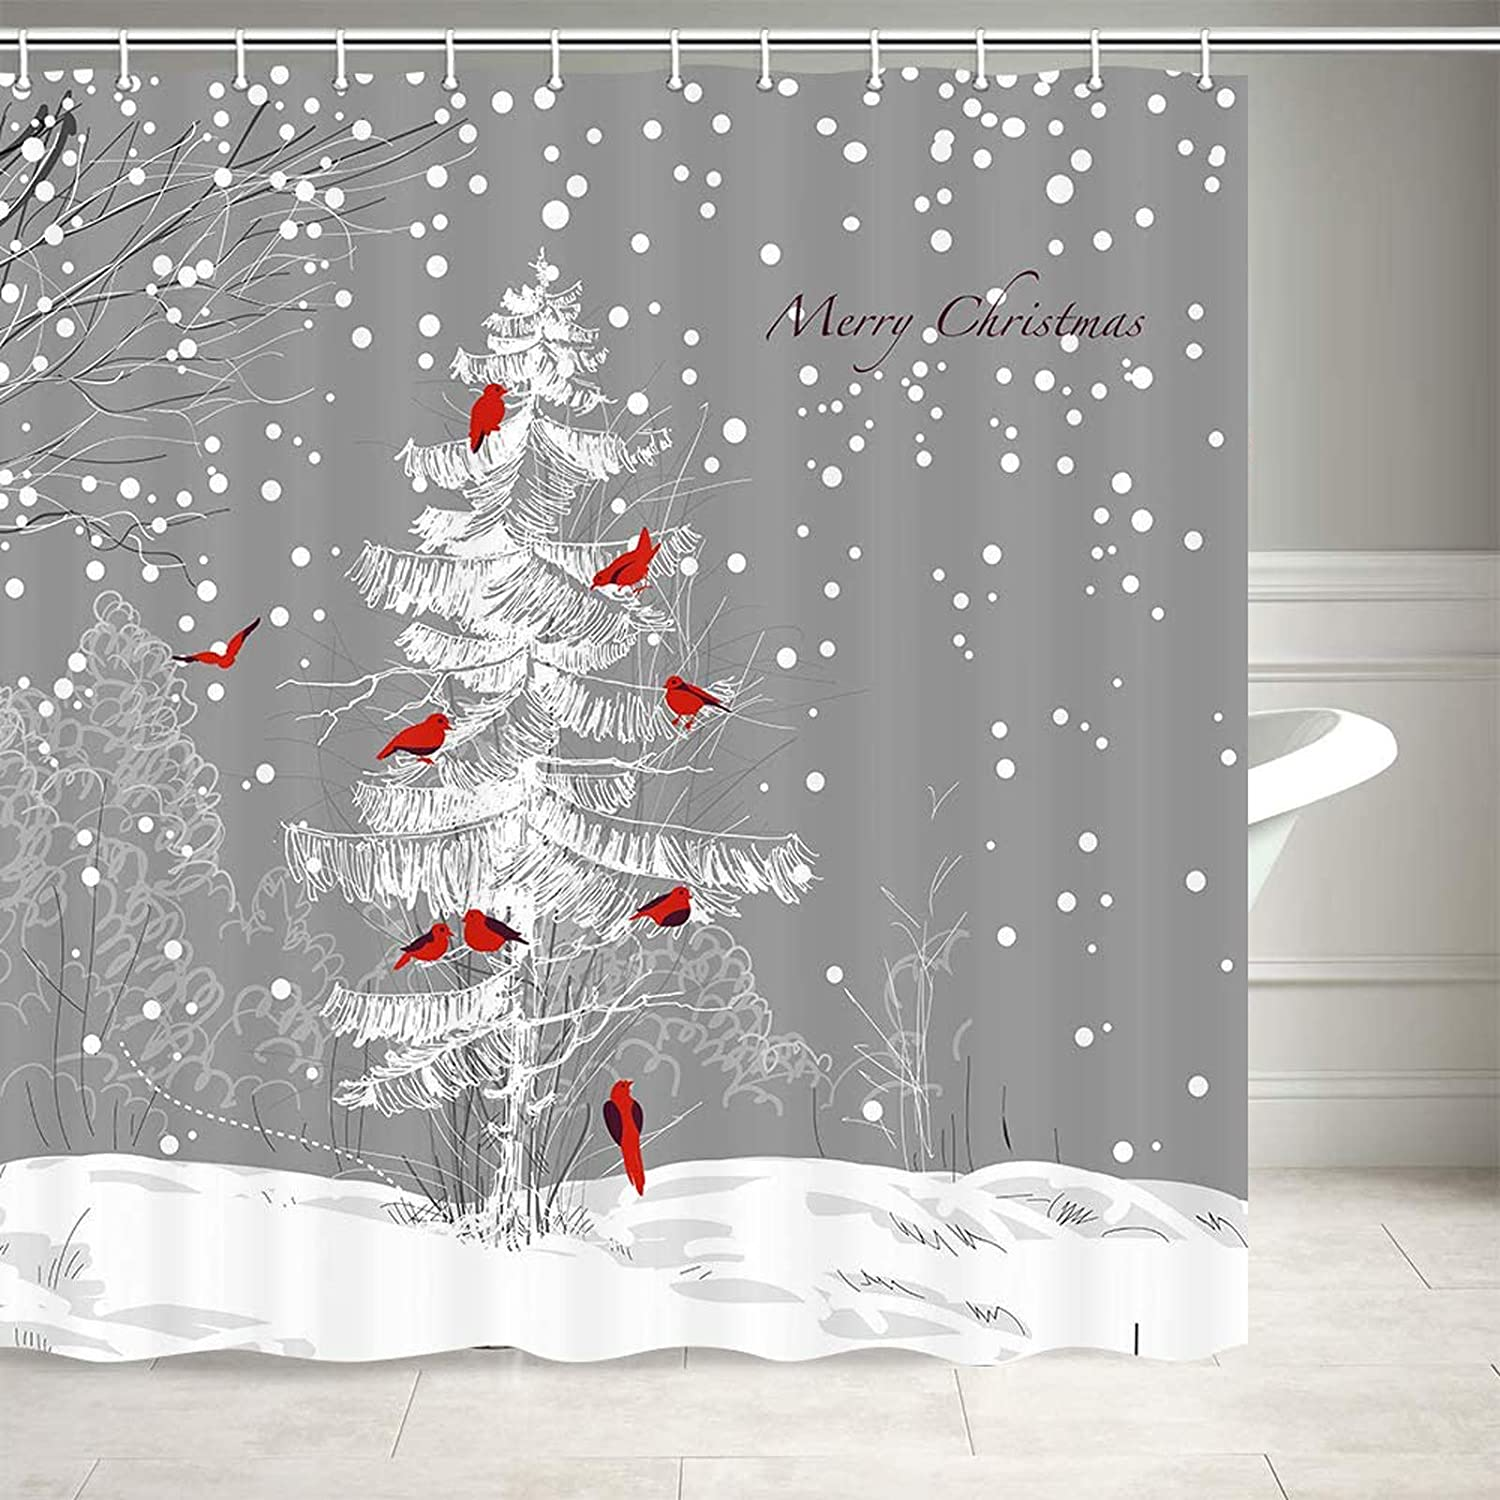 Christmas Shower Curtain, Cardinals Bird on Xmas Tree on Falling Snowy Winter Forest Bathroom Curtains, Fabric Cold Winter Day Birds Xmas Tree Winter Scene Picture Shower Curtain 12PCS Hooks, 69X70IN